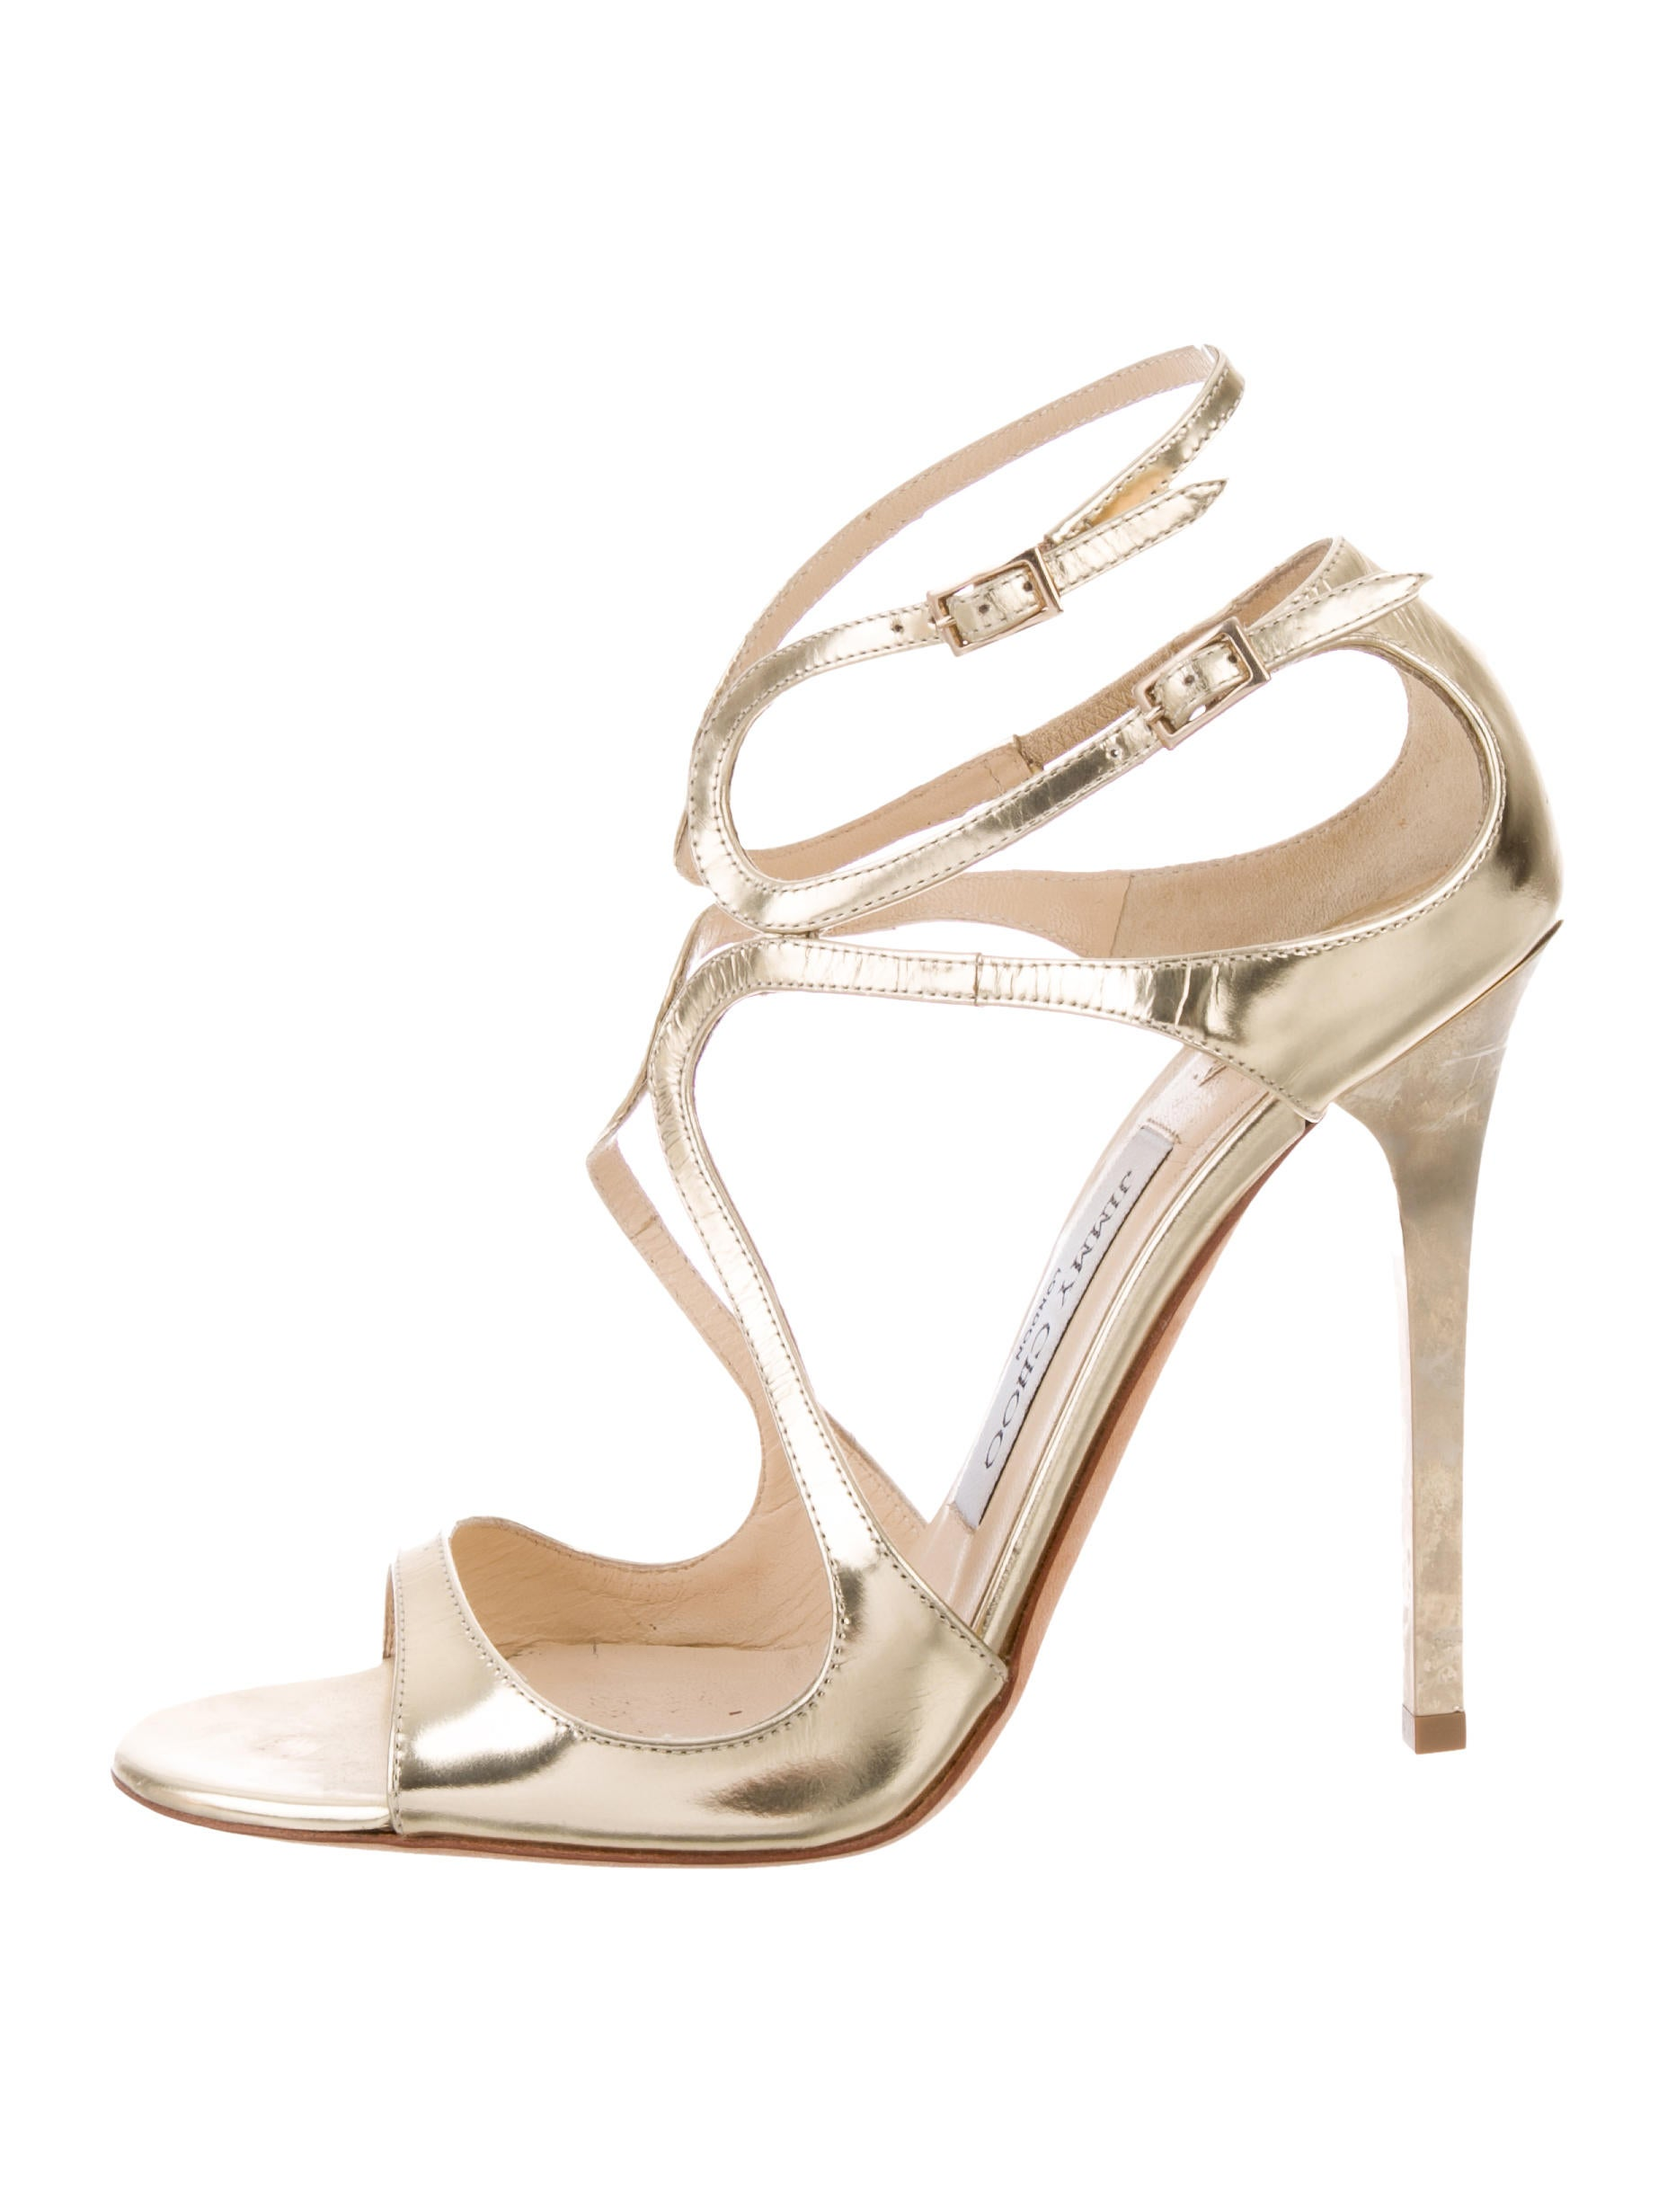 77f24a2ecf531b Jimmy Choo Leather Cage Sandals - Shoes - JIM97325